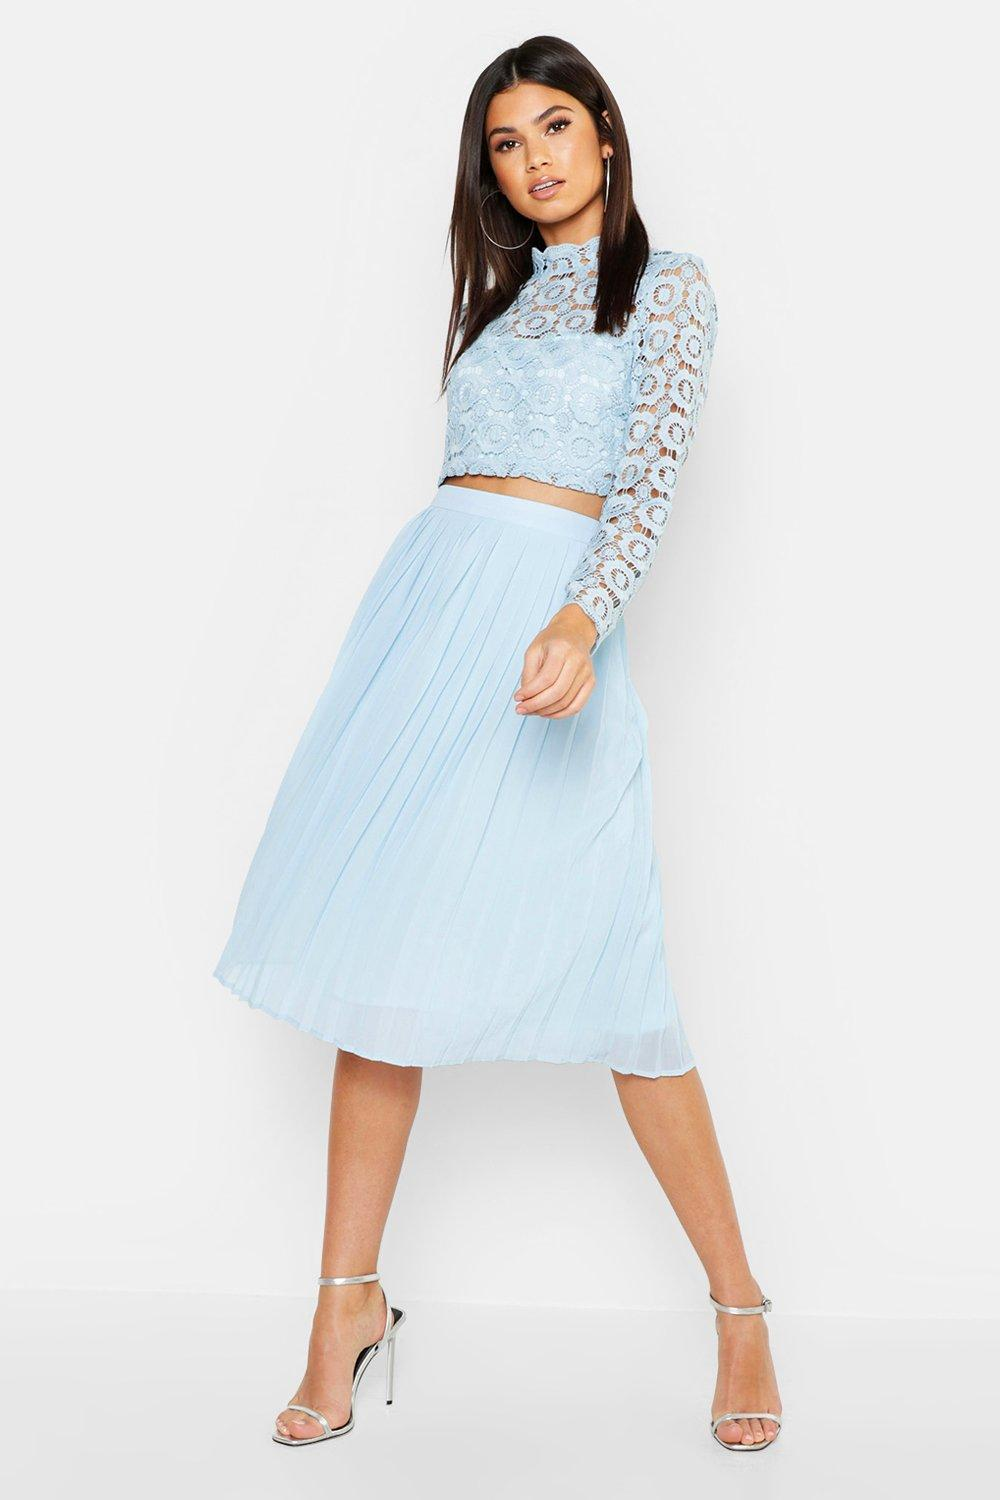 d9907f20180b Boohoo Boutique Lace Top And Midi Skirt Set in Blue - Lyst